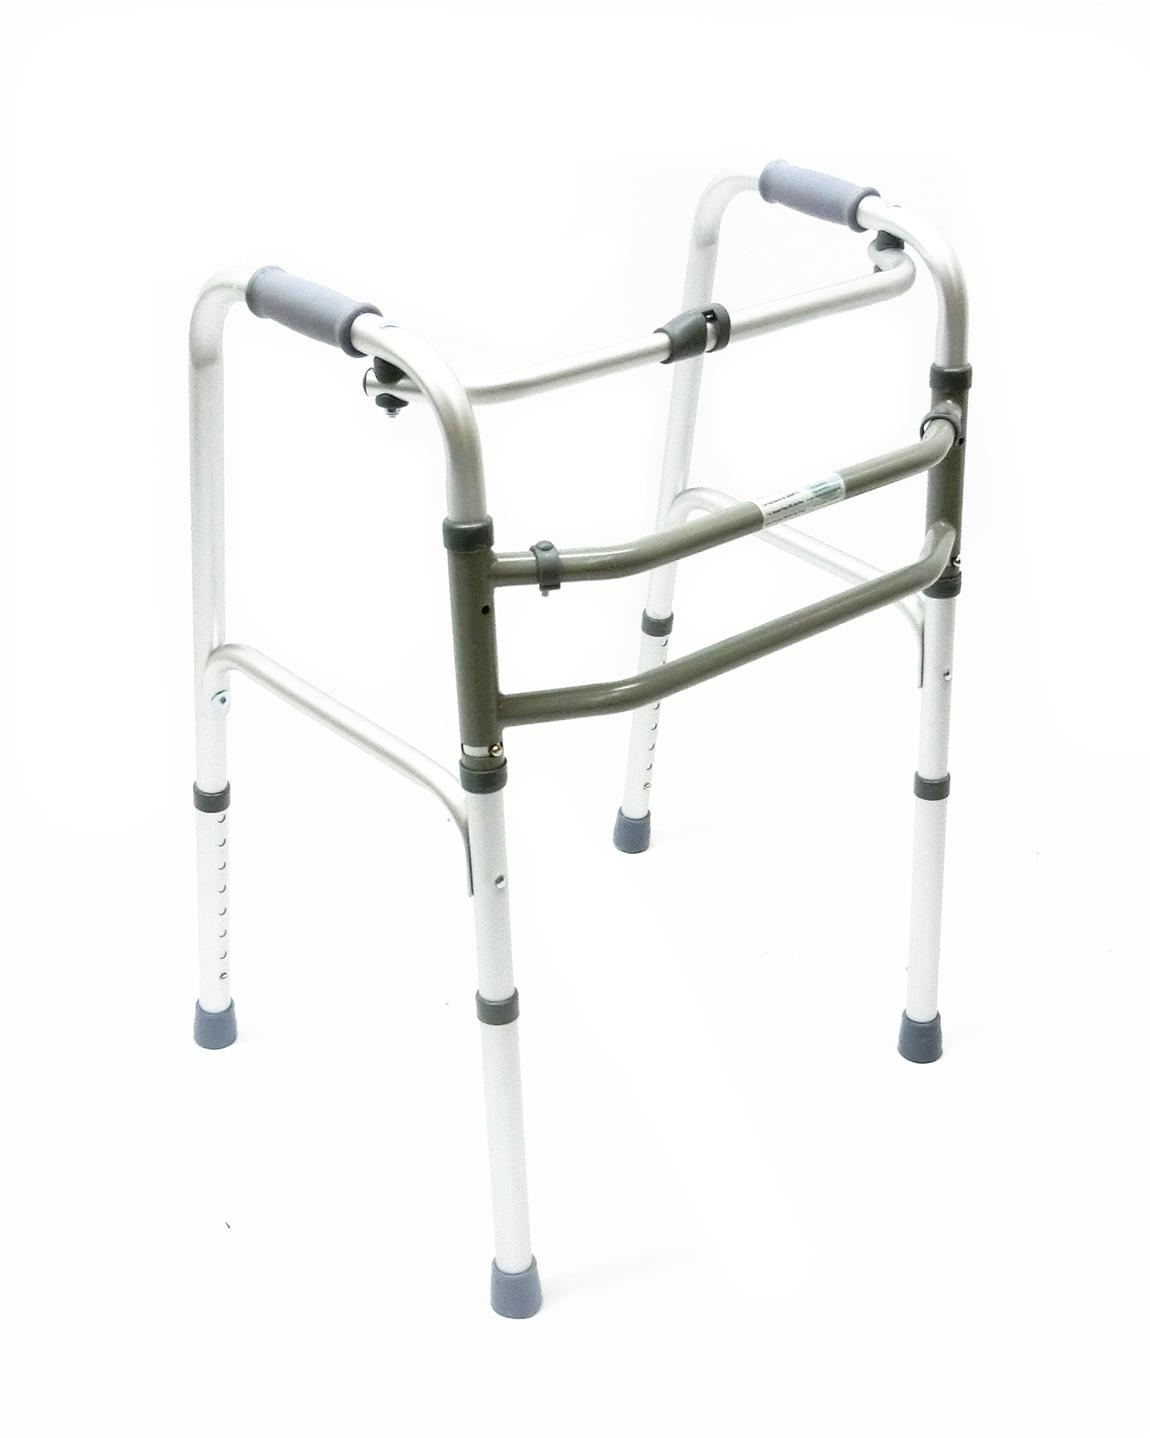 Walking frame reciprocal foldable adjustable height Alat bantu jalan